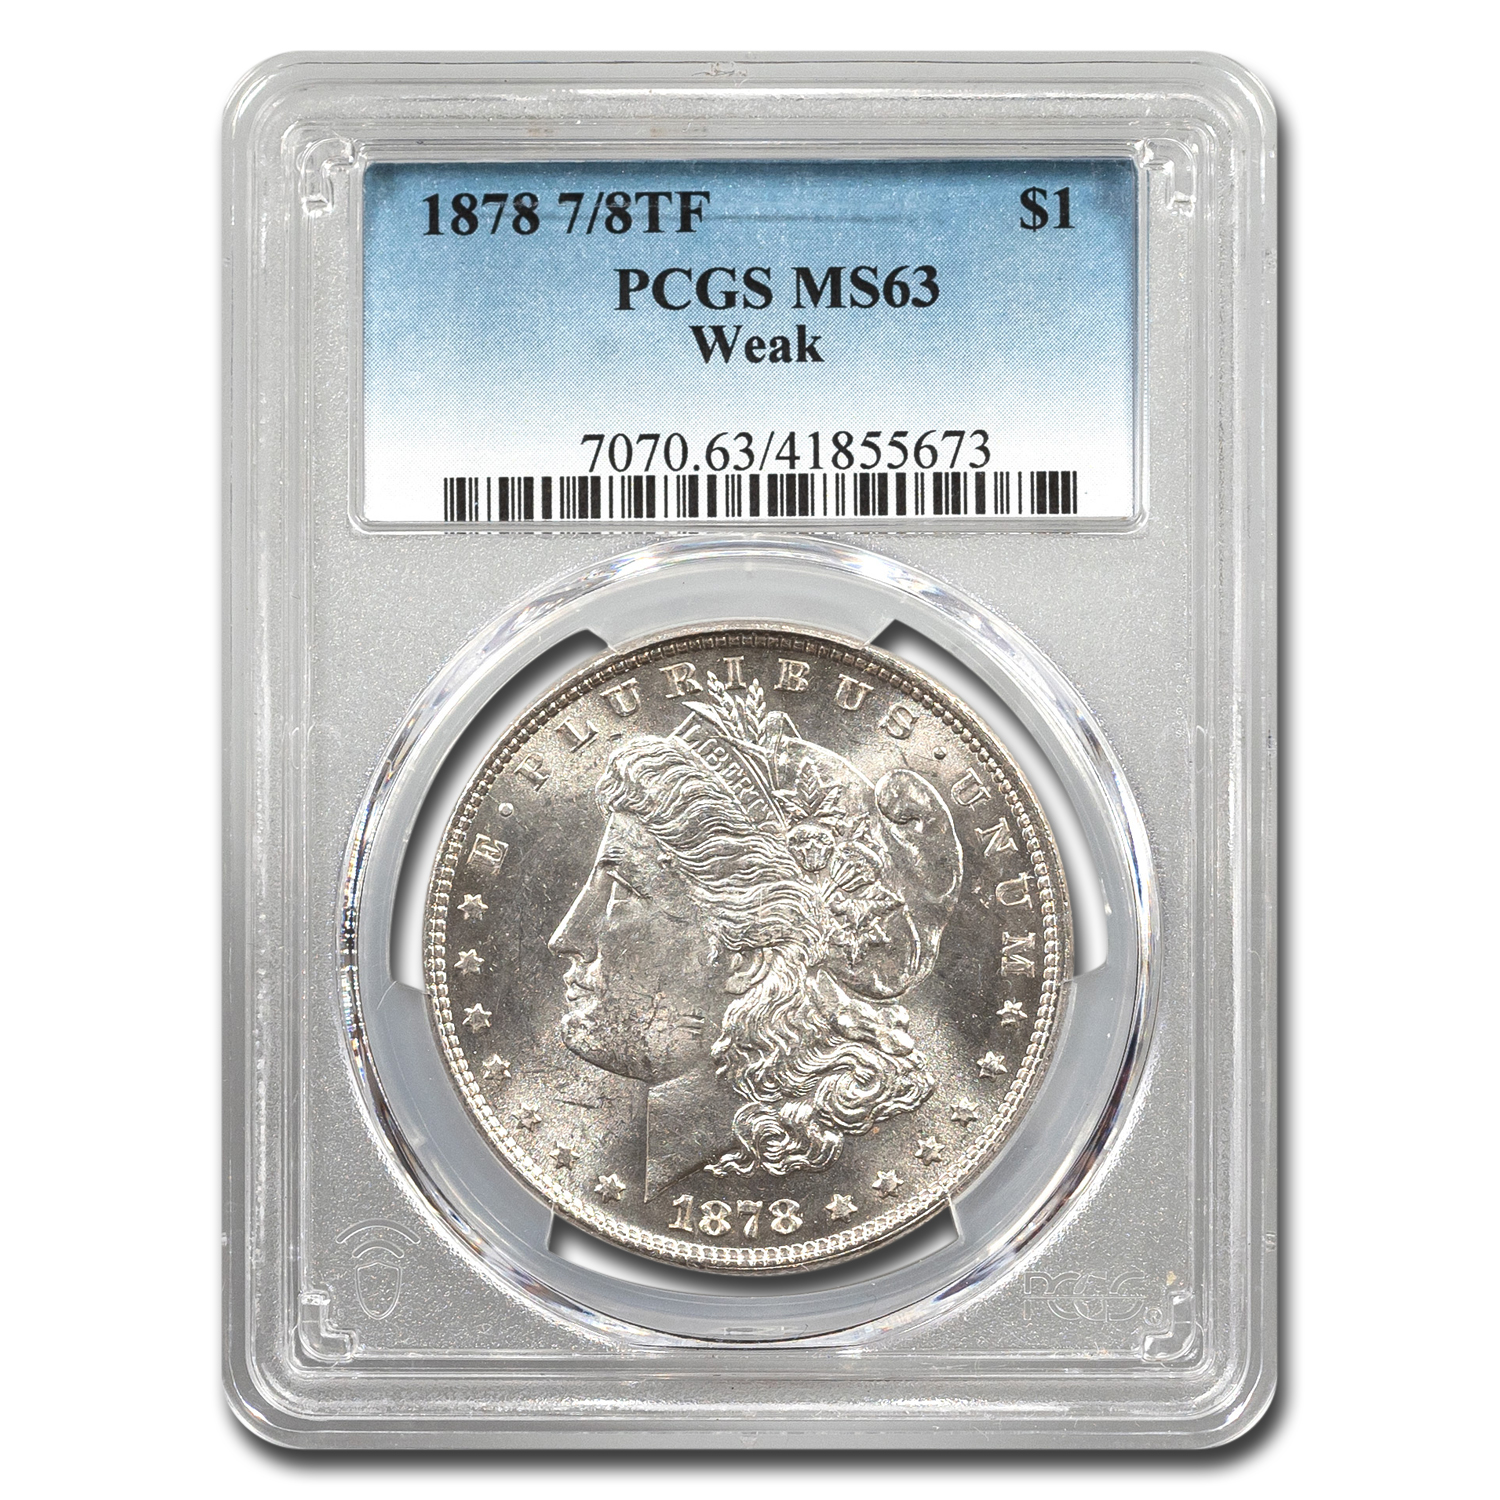 1878 Morgan Dollar 7/8 TF Weak MS-63 PCGS